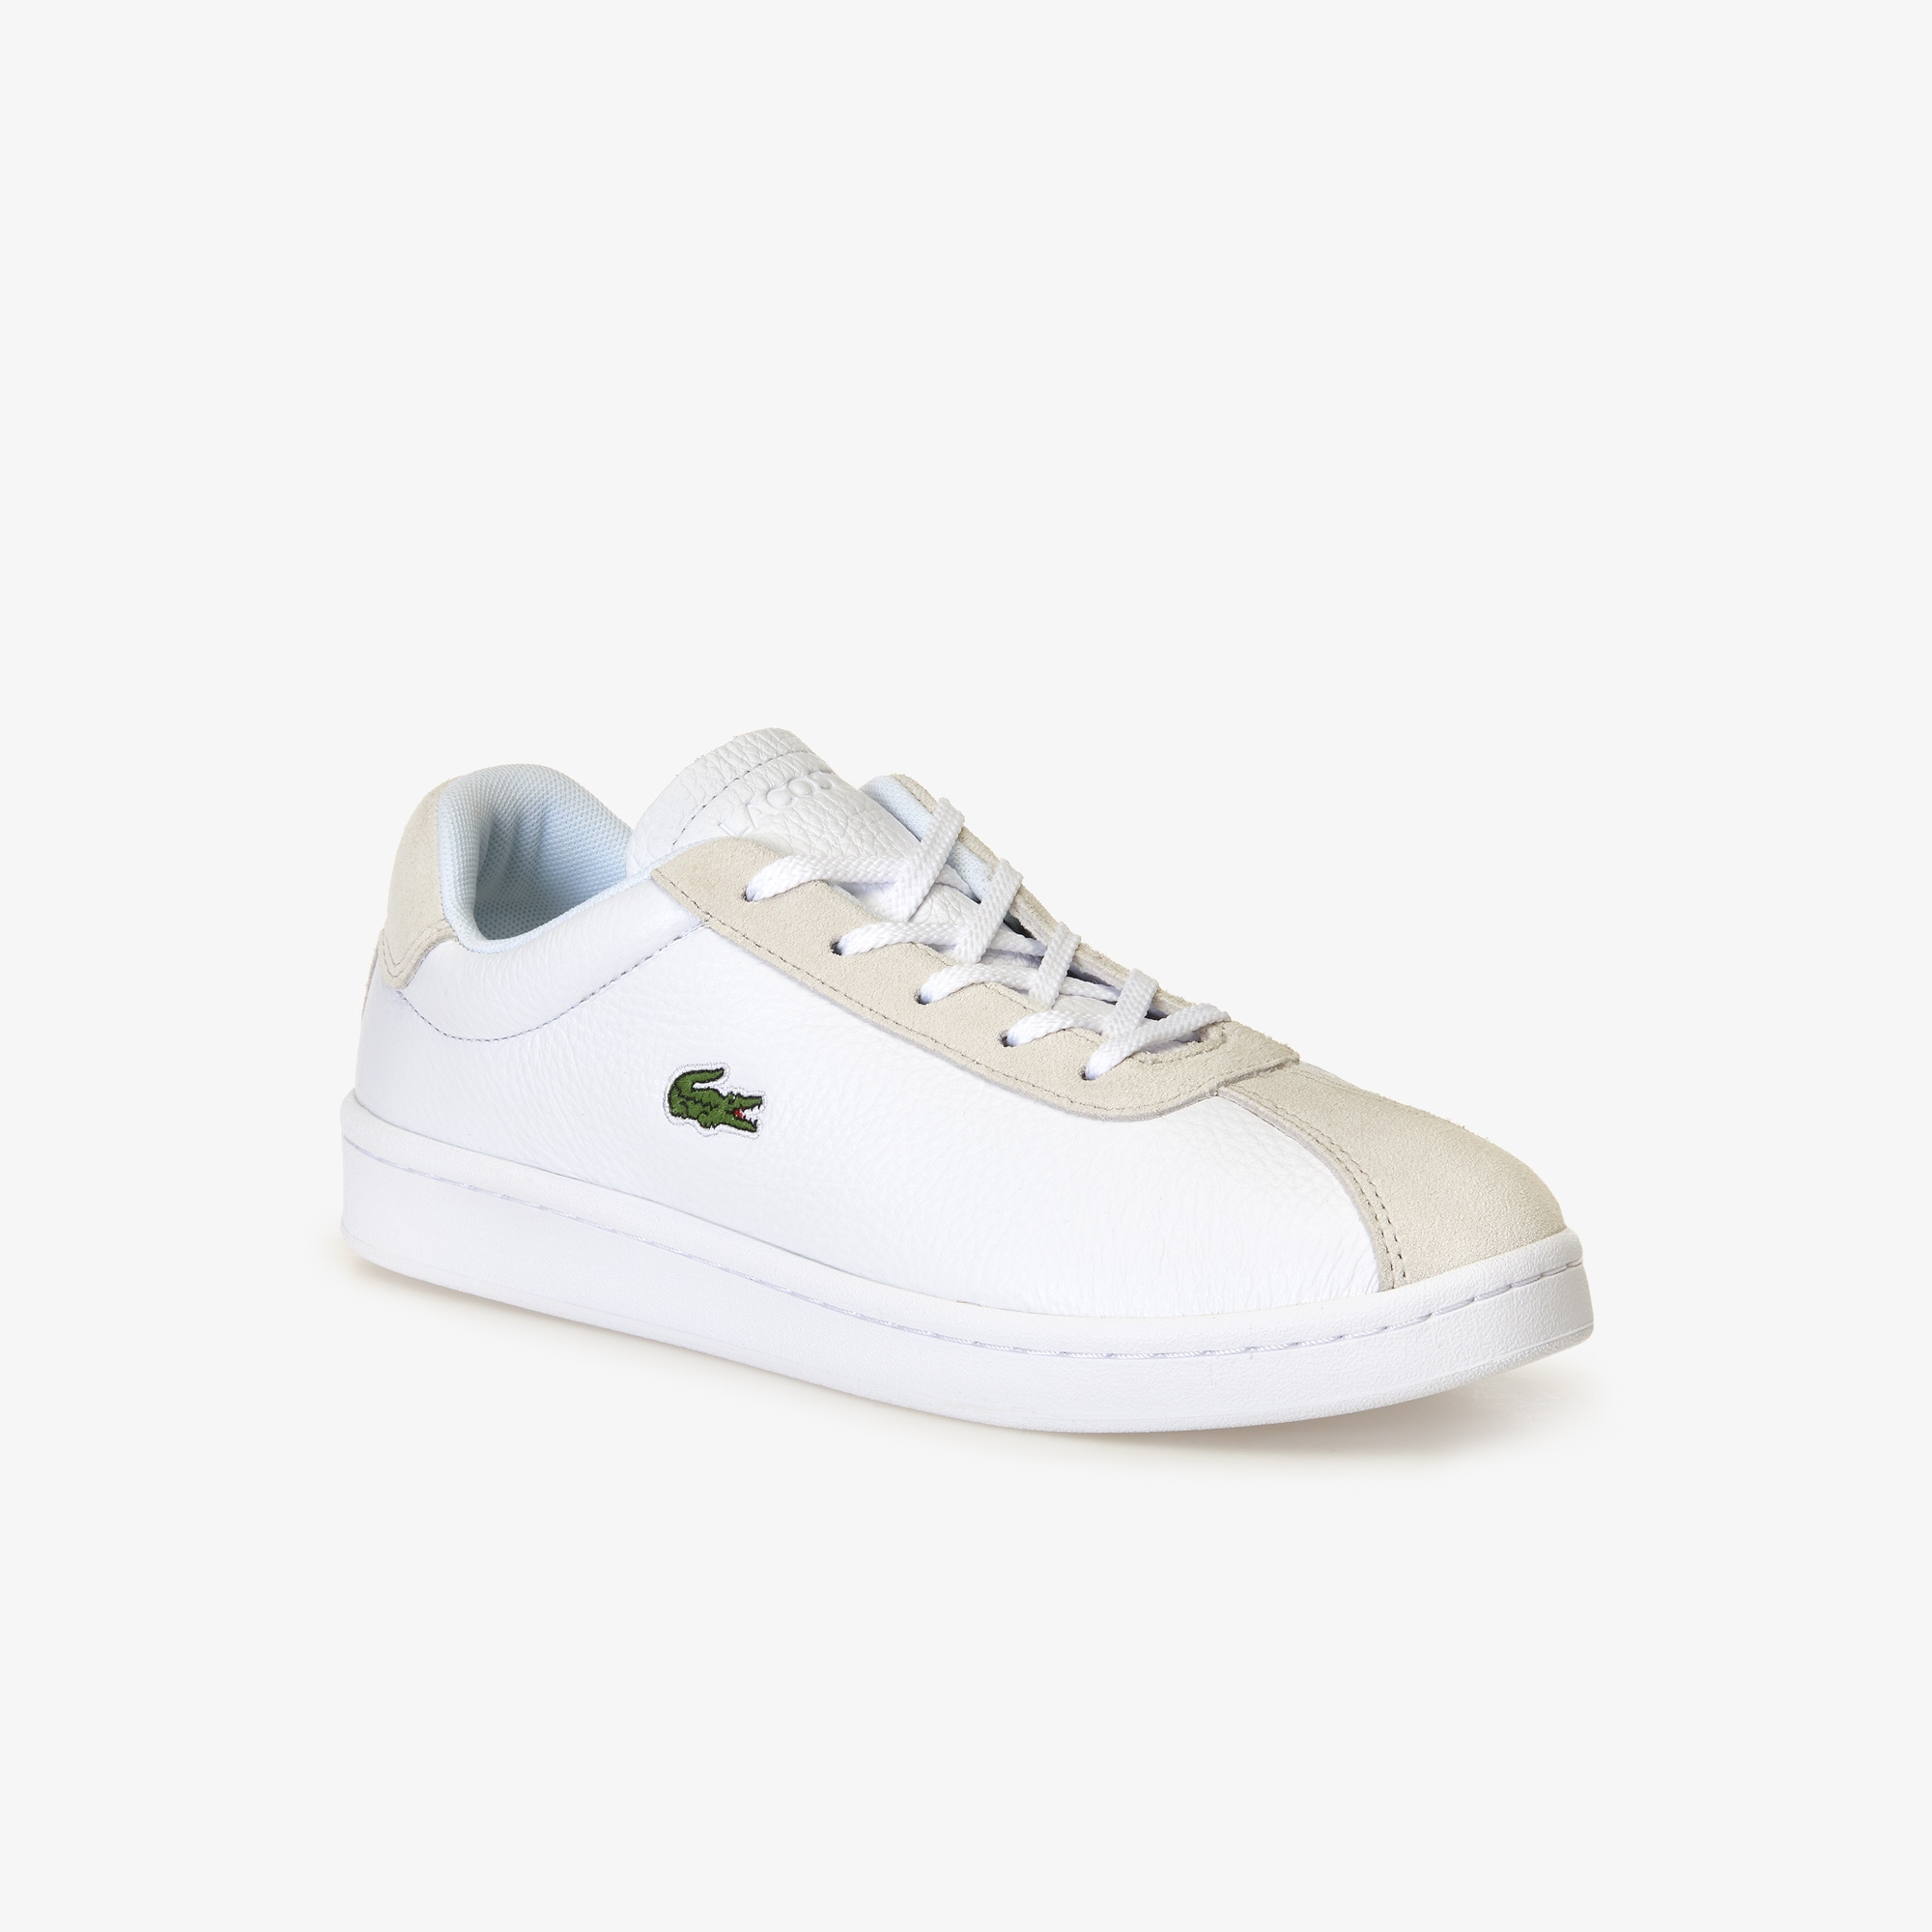 385b01ef20 Chaussures femme | Collection Femme | LACOSTE